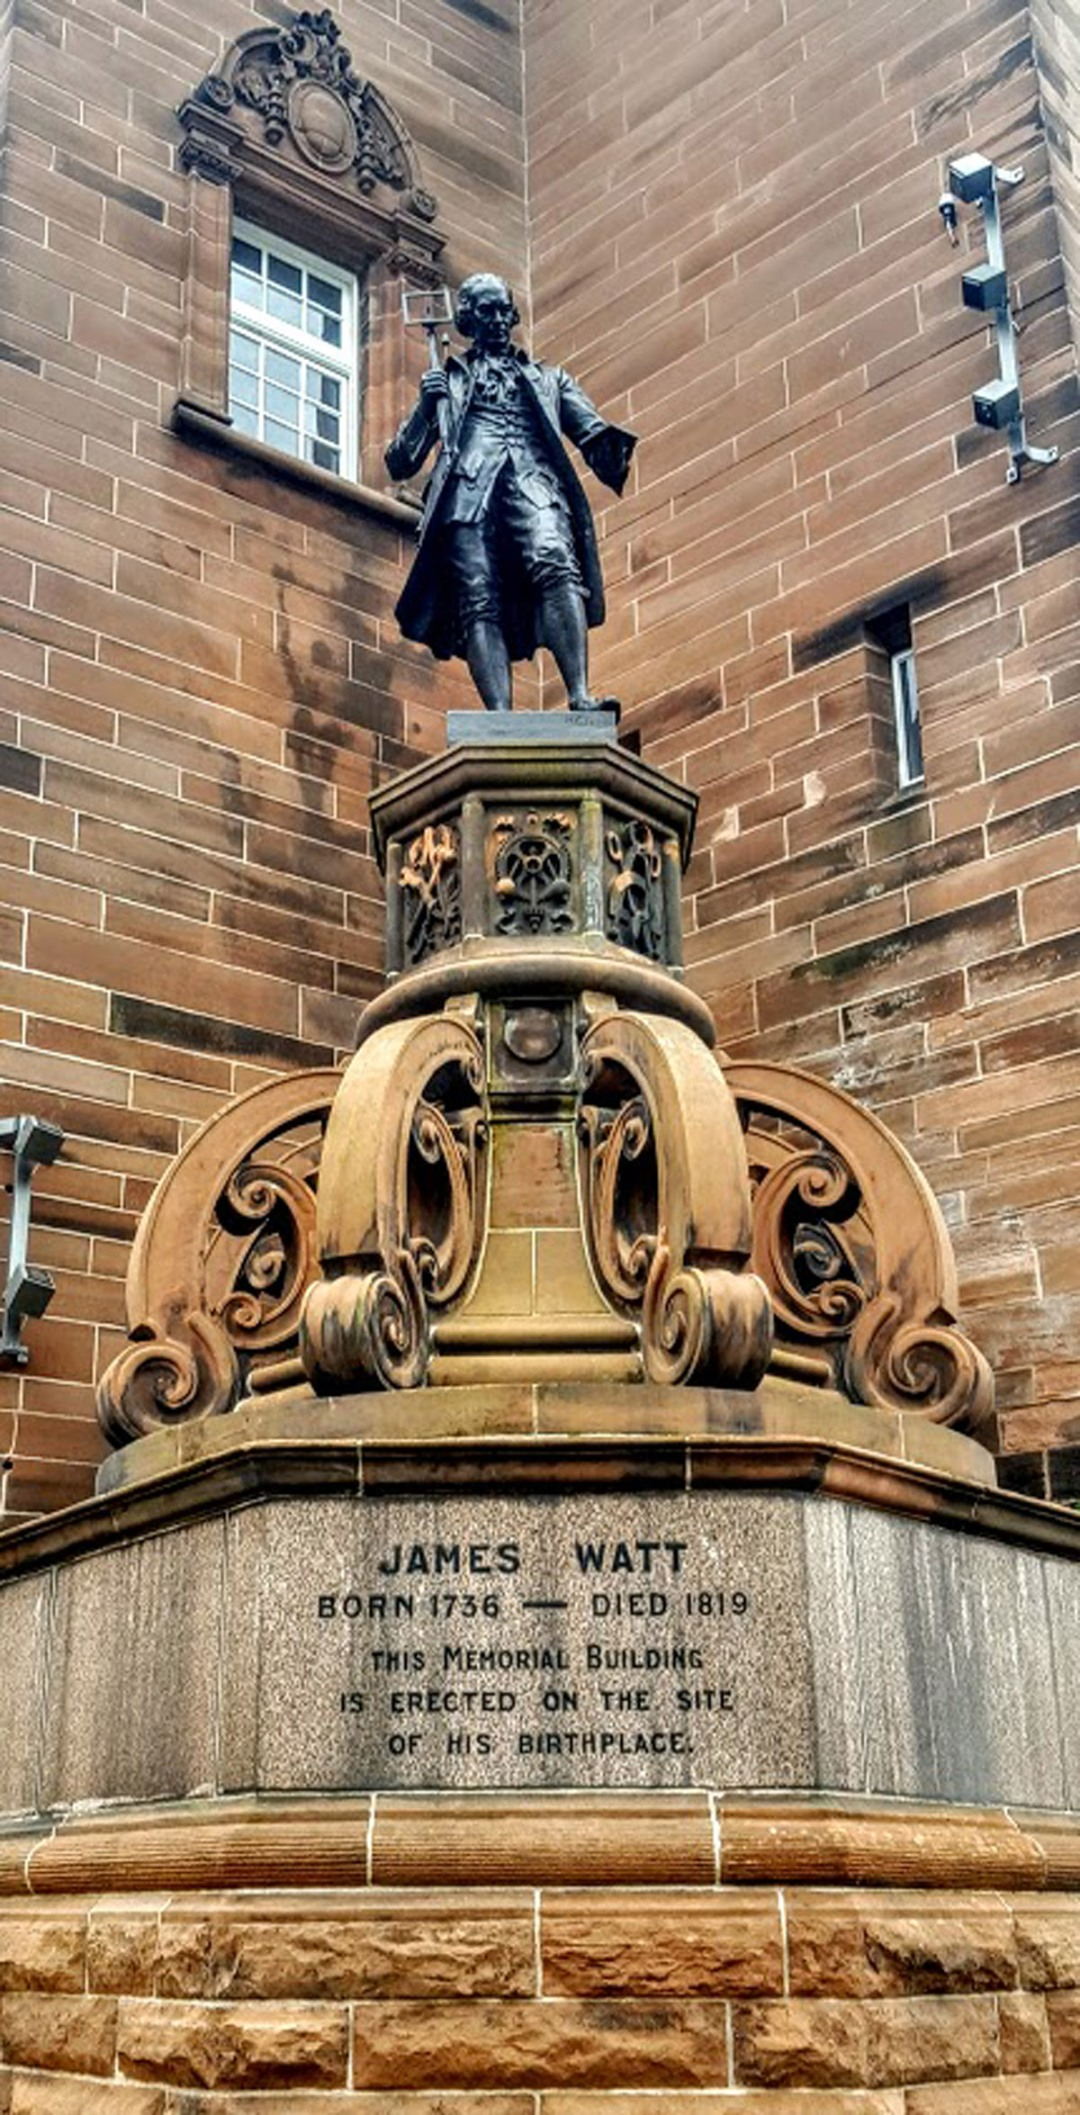 The Watt Statue at William Street, Greenock.